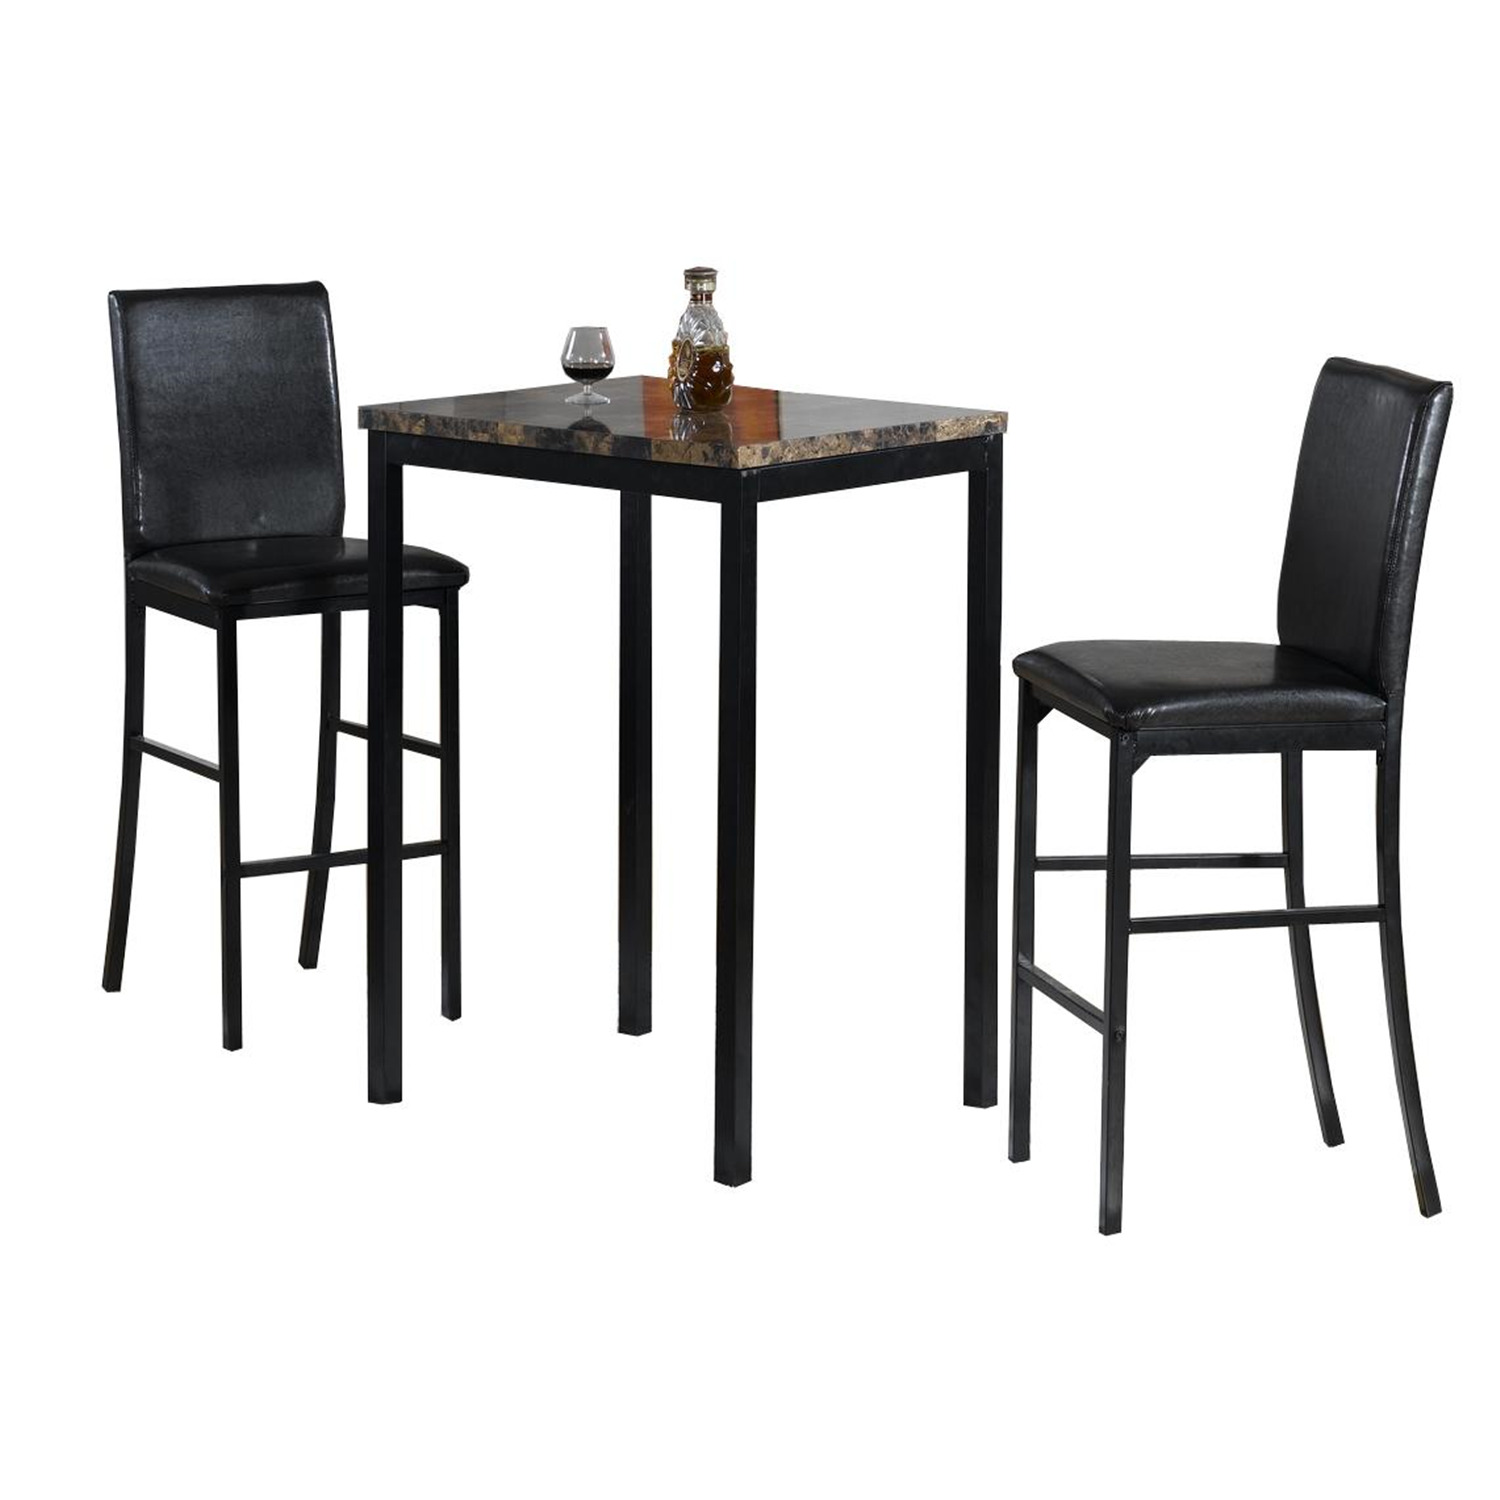 Home Source Faux Marble Counter Height Bistro Table w Two Chairs by OJ merce $267 99